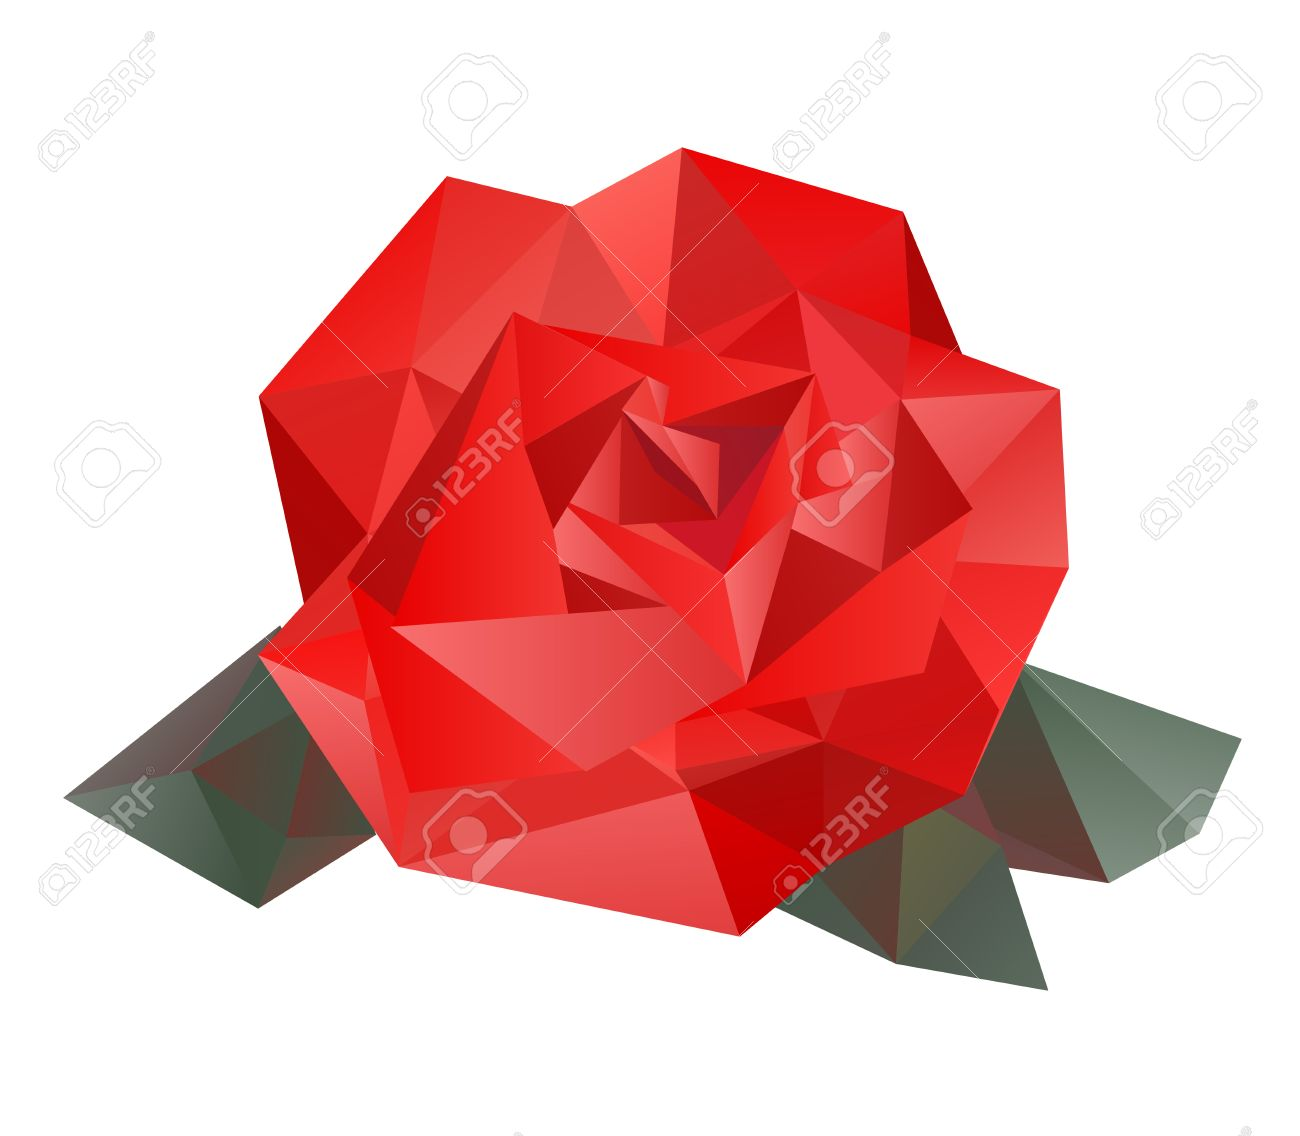 Geometric vector rose royalty free cliparts vectors and stock geometric vector rose stock vector 41138674 voltagebd Gallery